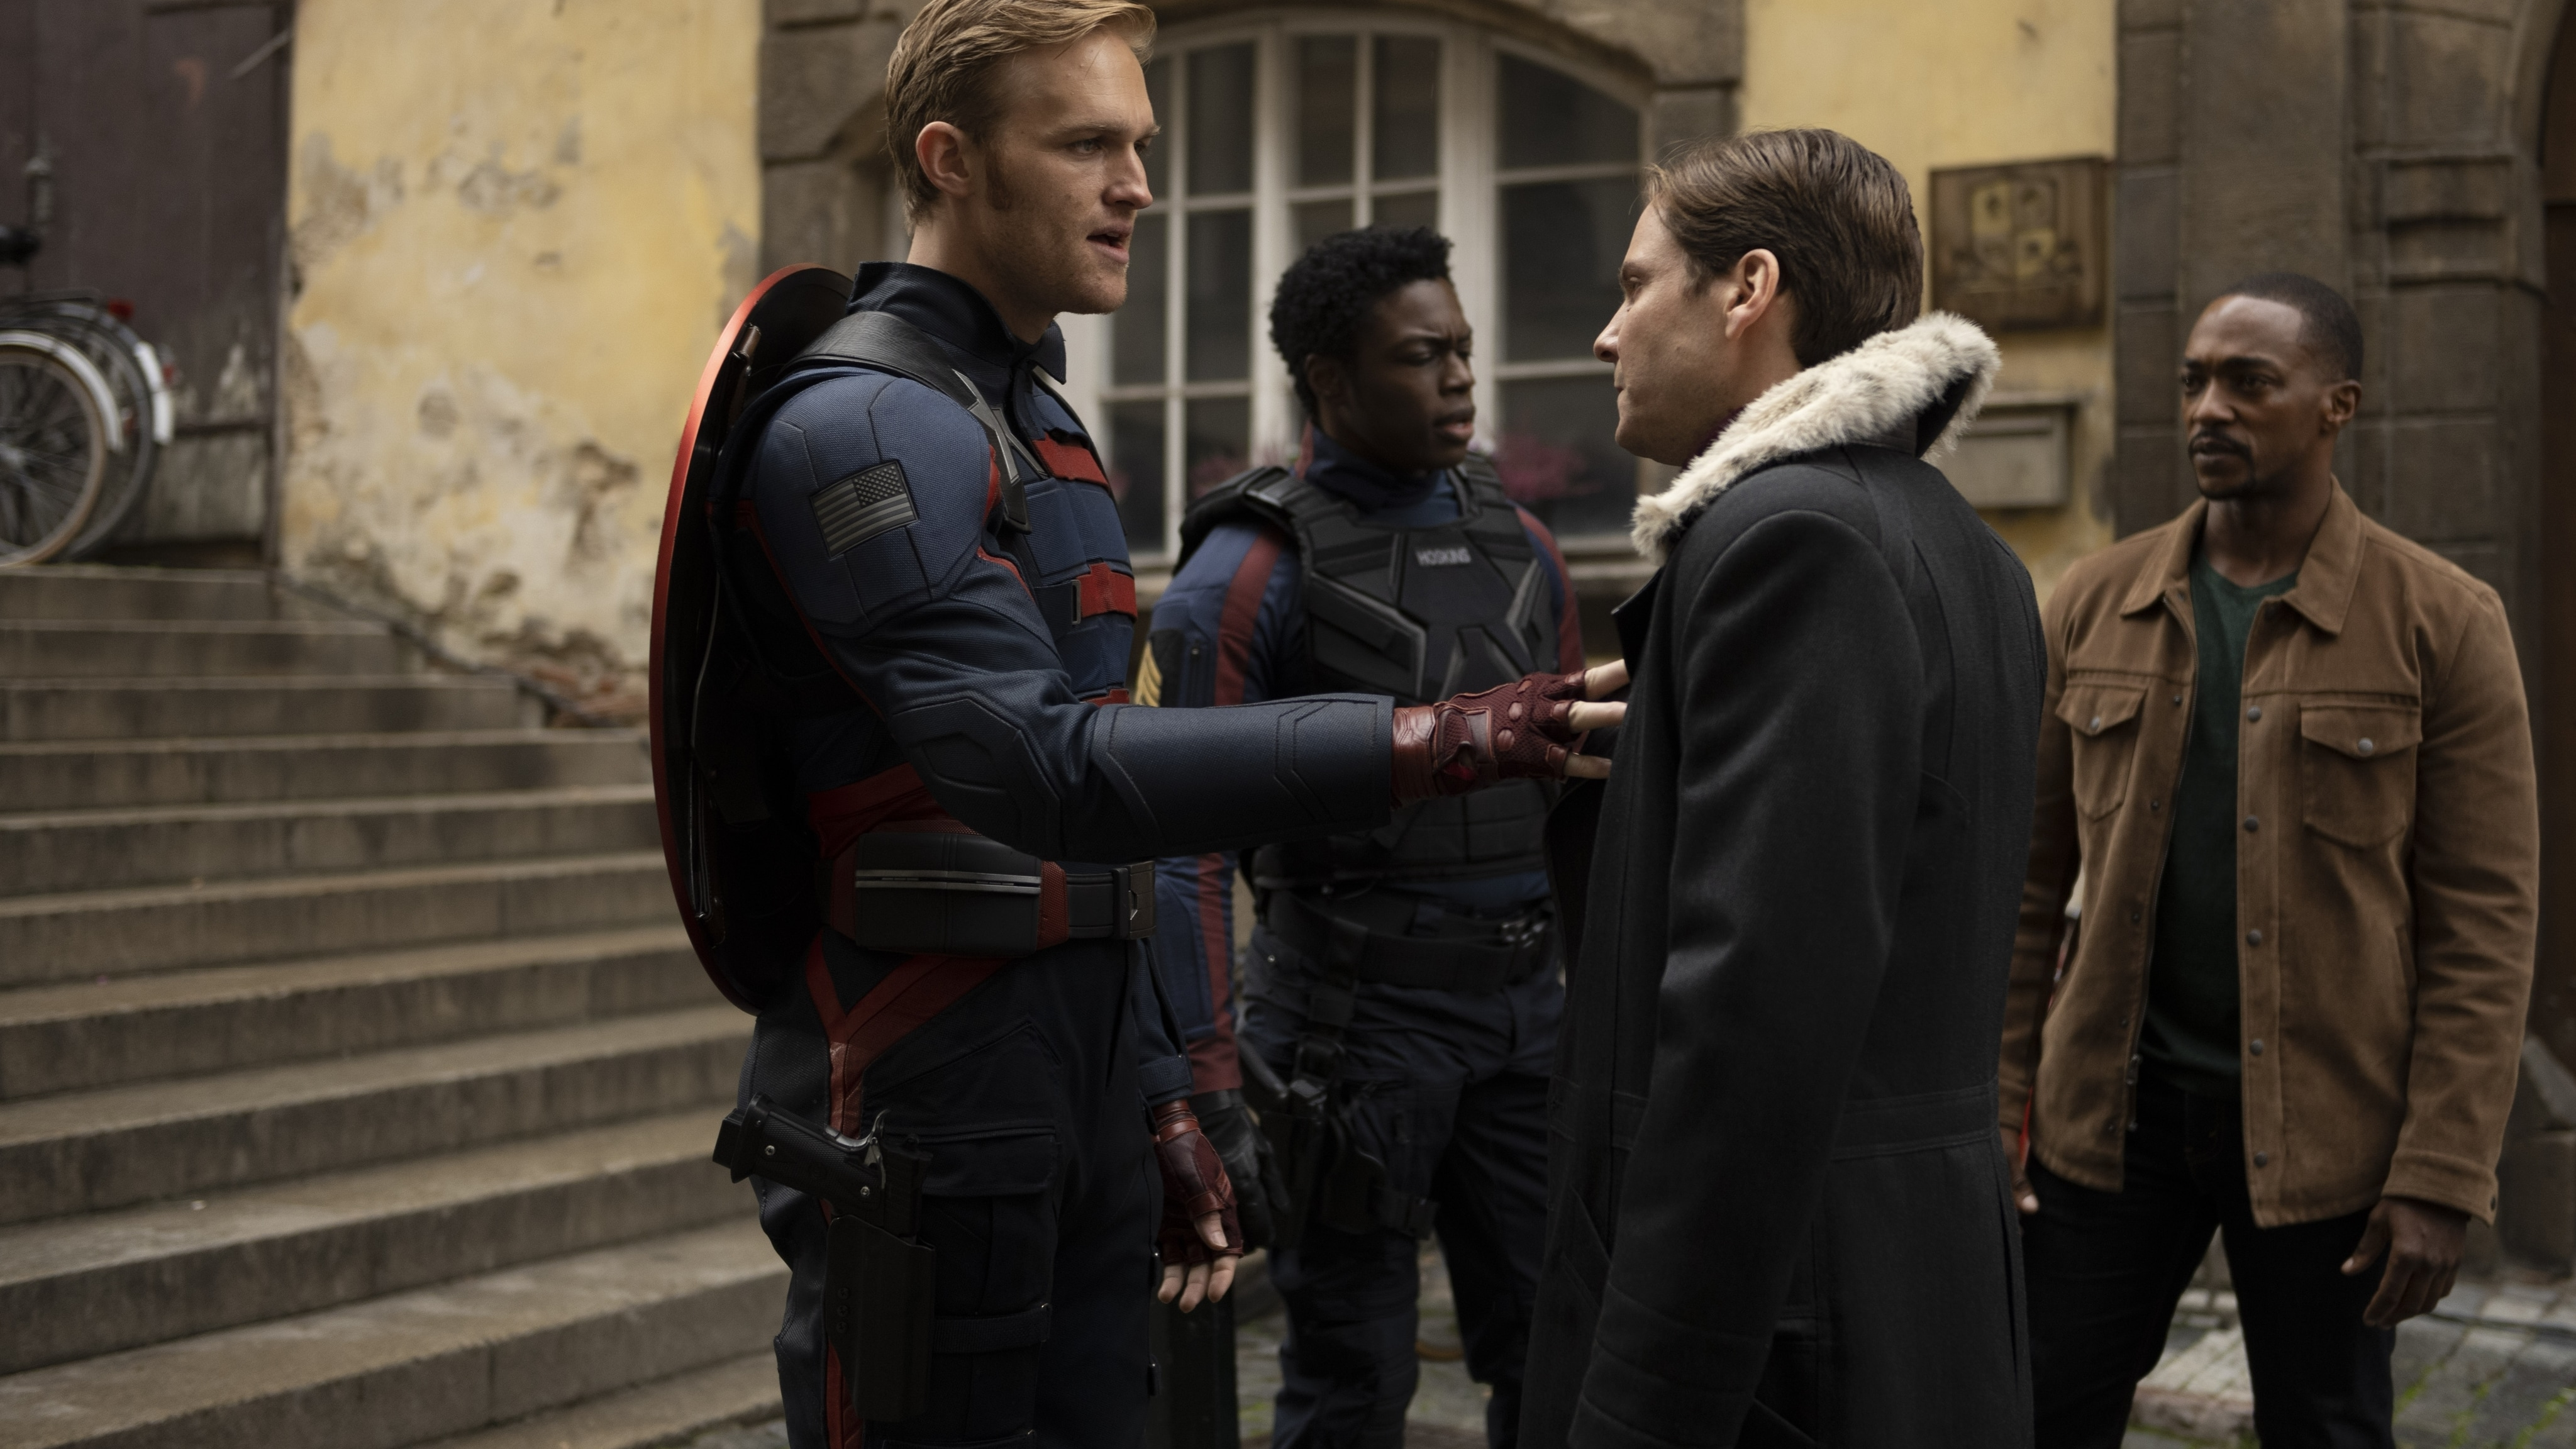 (L-R): John Walker (Wyatt Russell), Lemar Hoskins (Clé Bennett), Zemo (Daniel Brühl) and Falcon/Sam Wilson (Anthony Mackie) in Marvel Studios' THE FALCON AND THE WINTER SOLDIER exclusively on Disney+. Photo by Julie Vrabelová. ©Marvel Studios 2021. All Rights Reserved.